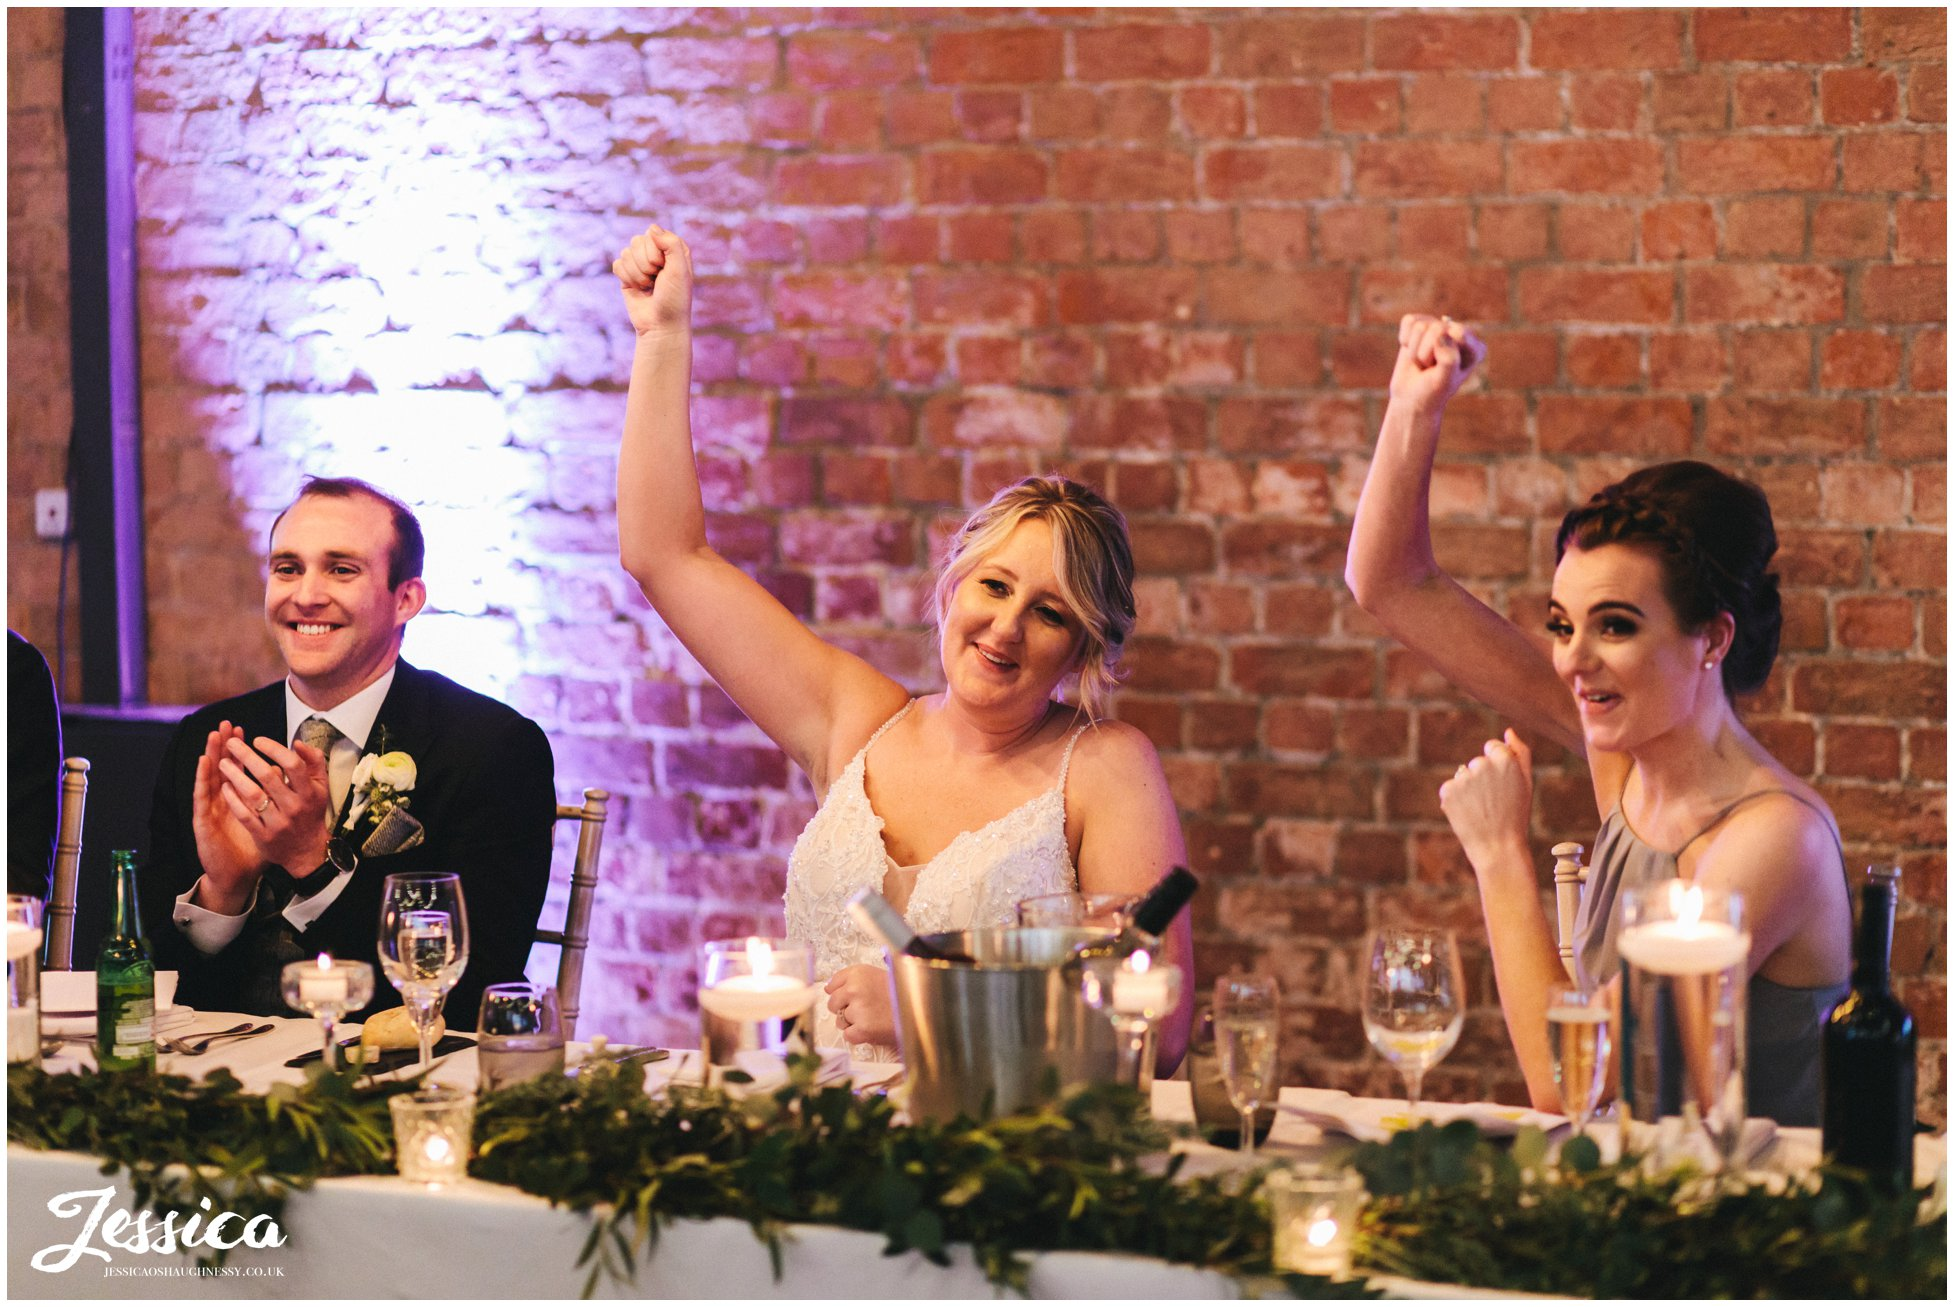 the bride & maid of honour cheer during the wedding speeches